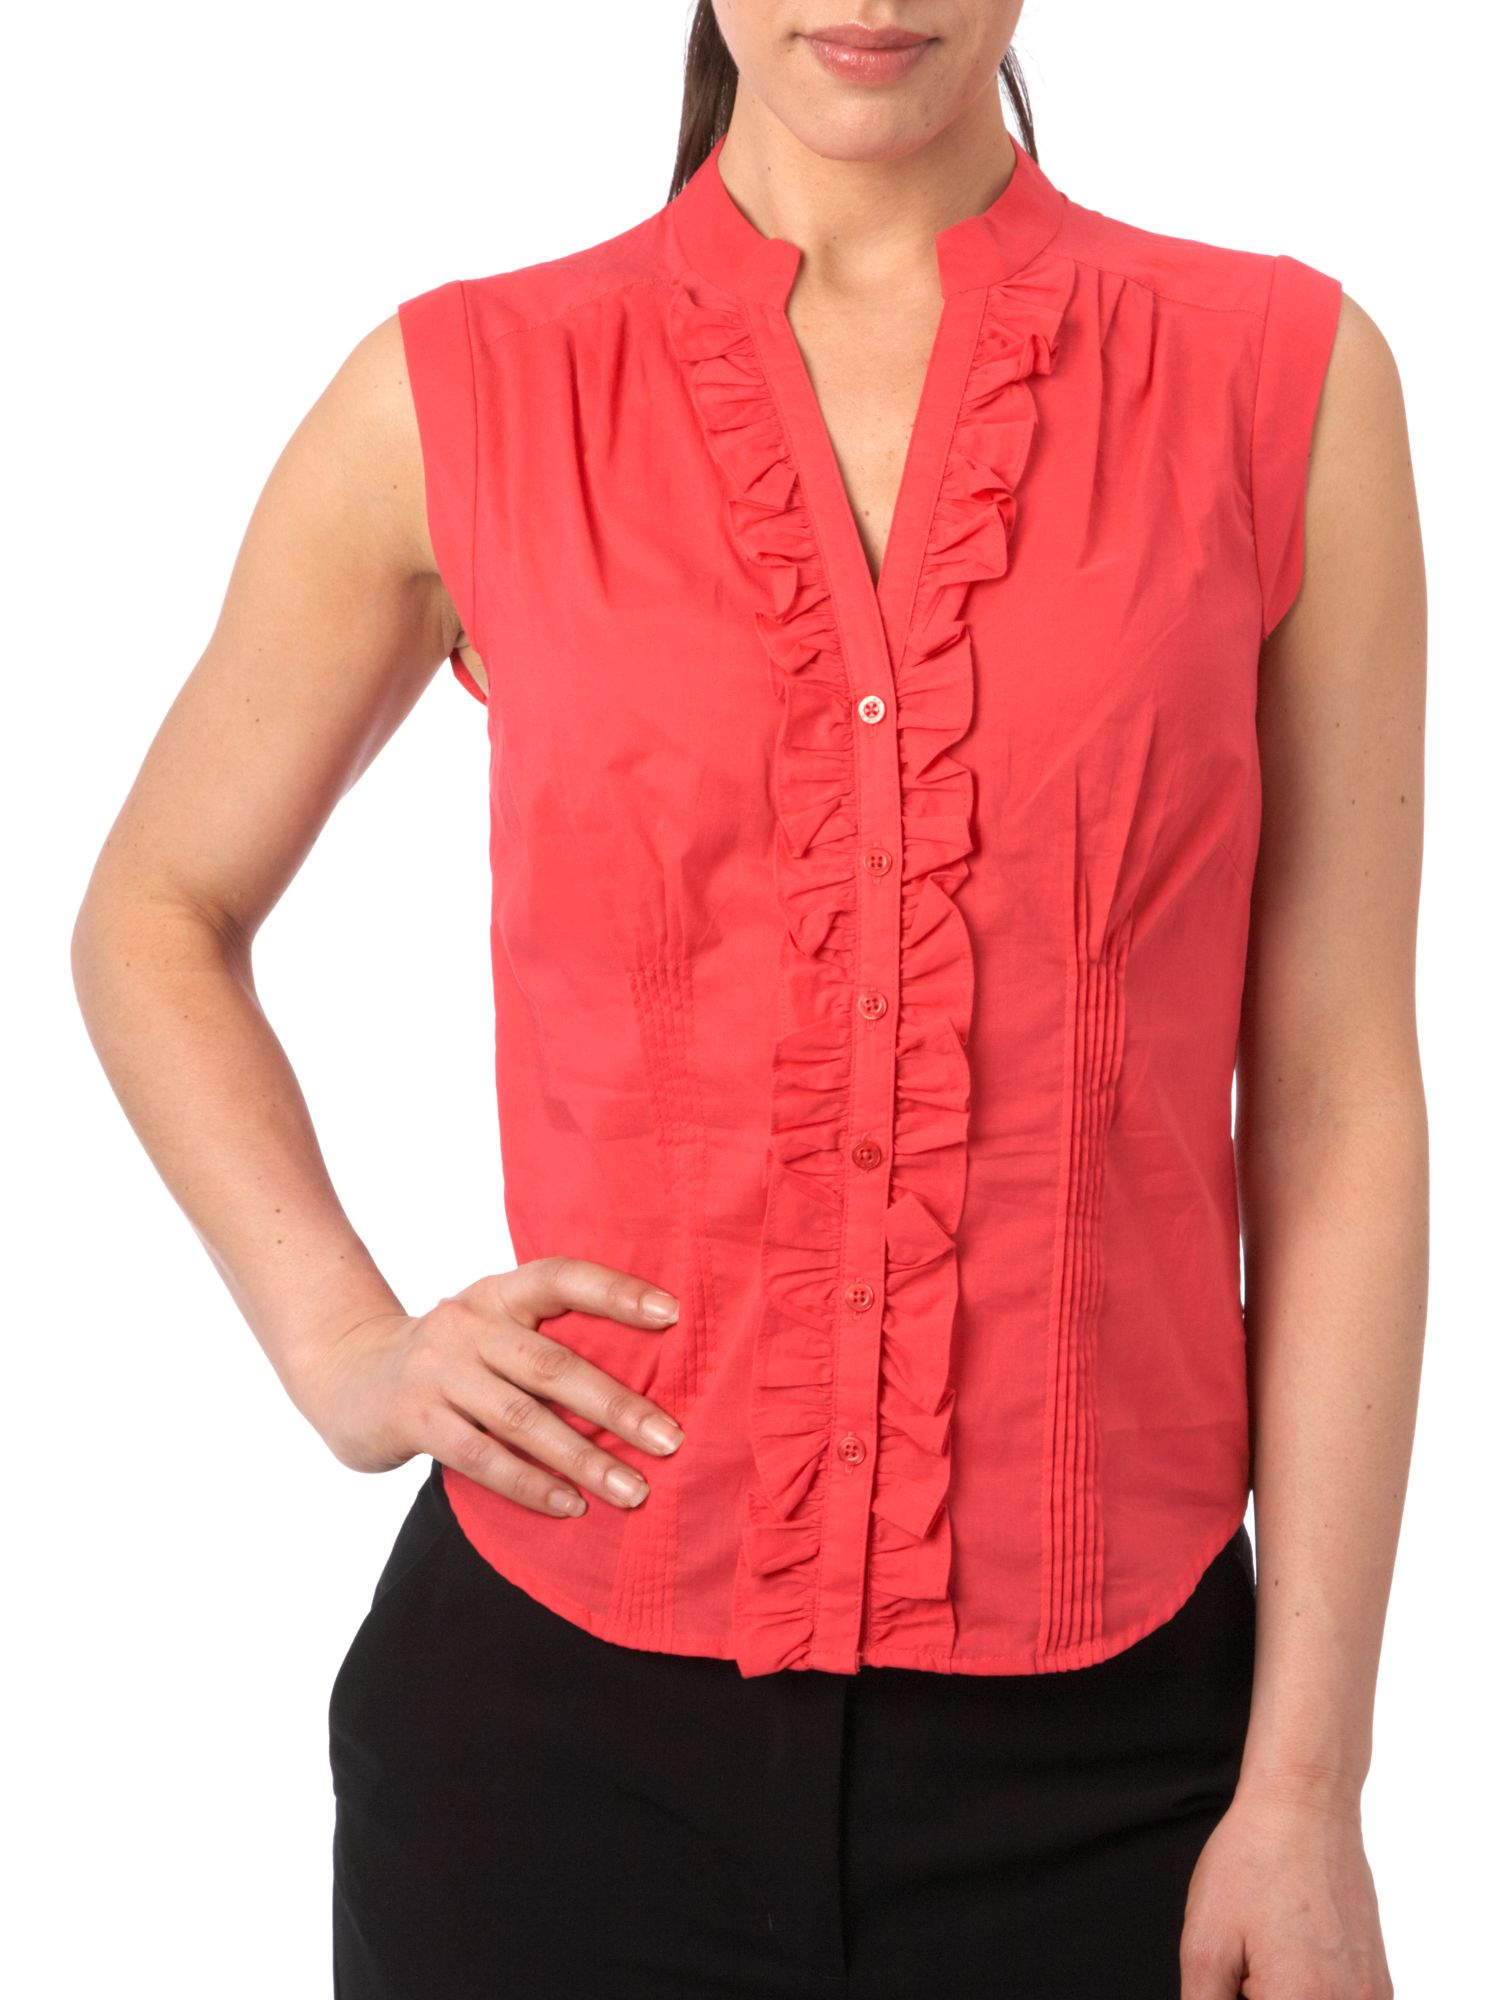 Linea Ruffle blouse - Coral 16,16,18,18 product image